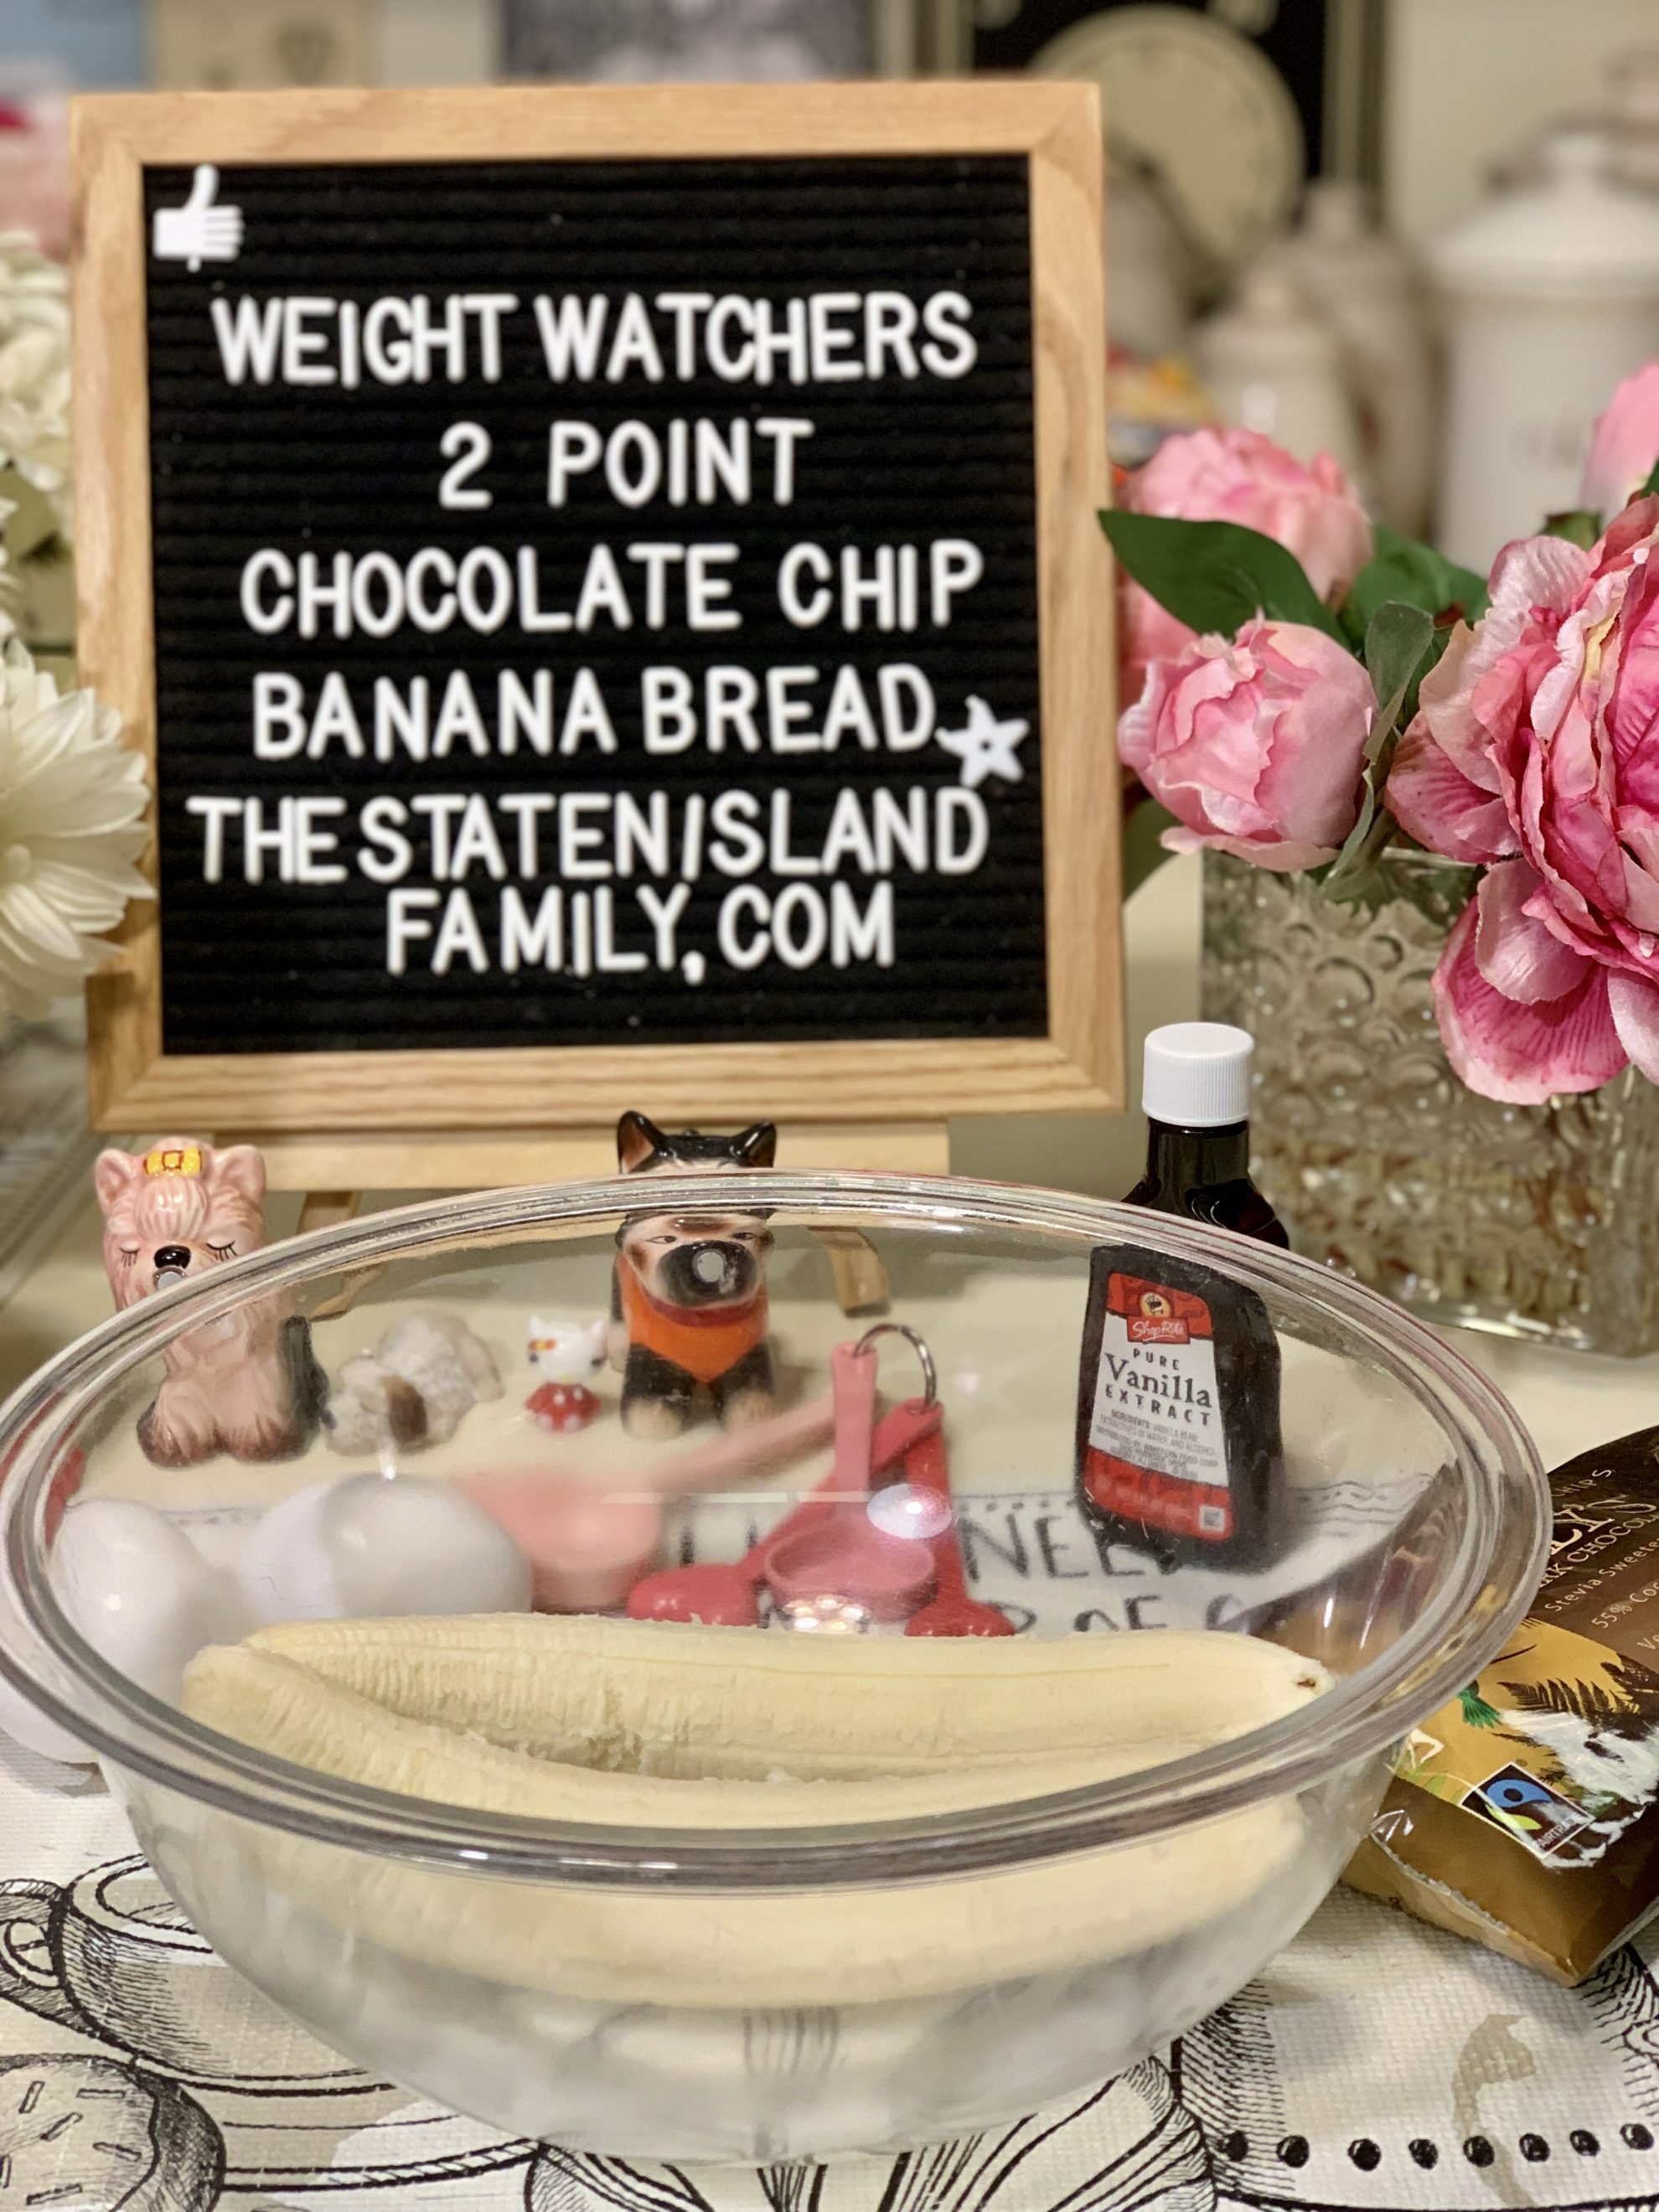 This weight watchers chocolate chip banana bread is Just Two POINTS Per very hefty serving!! And this entire recipe makes four servings! get all the delicious details here: https://www.thestatenislandfamily.com/weight-watchers-chocolate-chip-banana-bread-two-points/